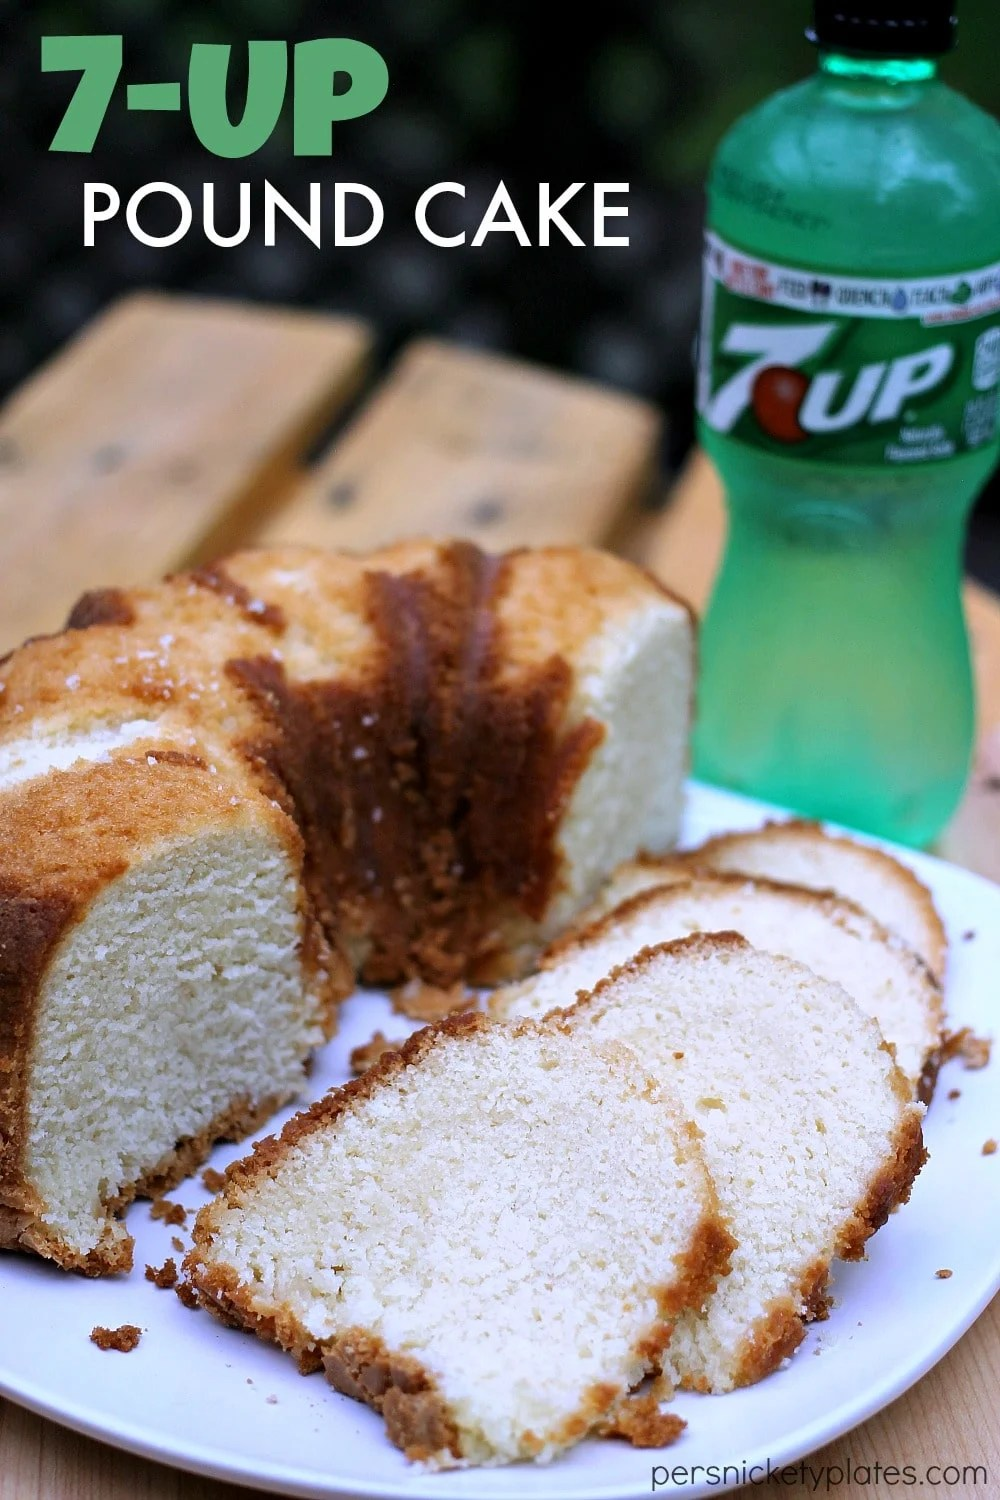 Simple, sweet, moist - 7-Up Pound Cake has a mild citrus flavor and a moist crumb. This classic pound cake is easy to make and a sure crowd pleaser. | www.persnicketyplates.com